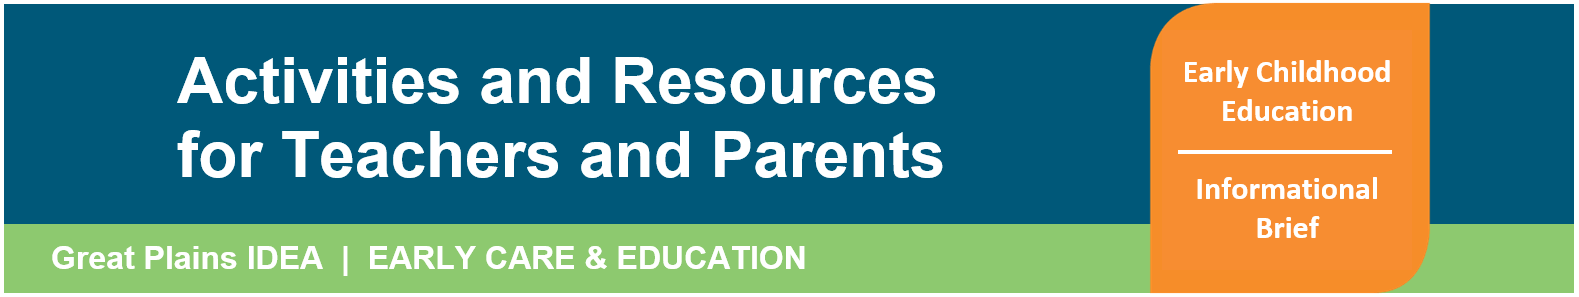 Header Activities and Resources for Teachers and Parents